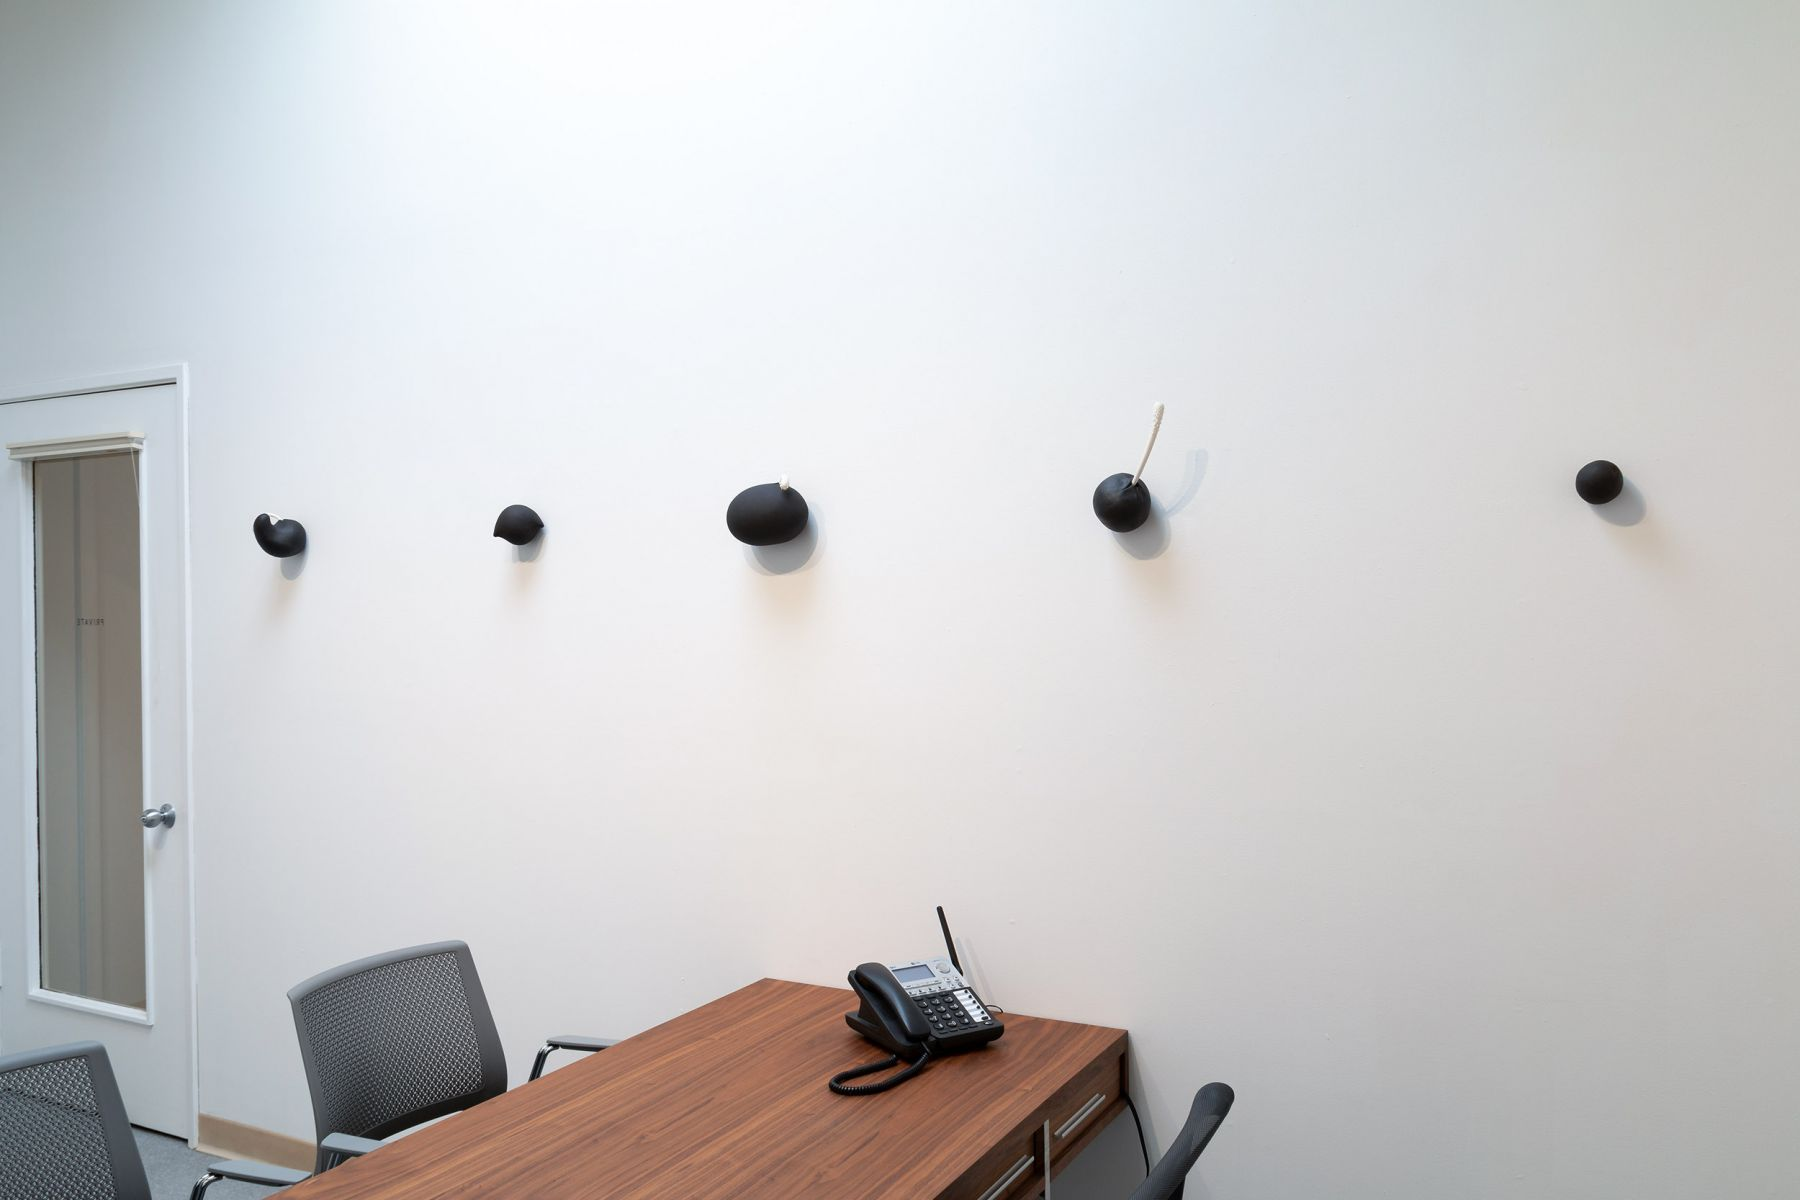 """Maya Vivas - selections from """"i have no choice but to suck the juice out, and who am i to blame"""" - July/August 2019 - Russo Lee Gallery - Installation view 06"""